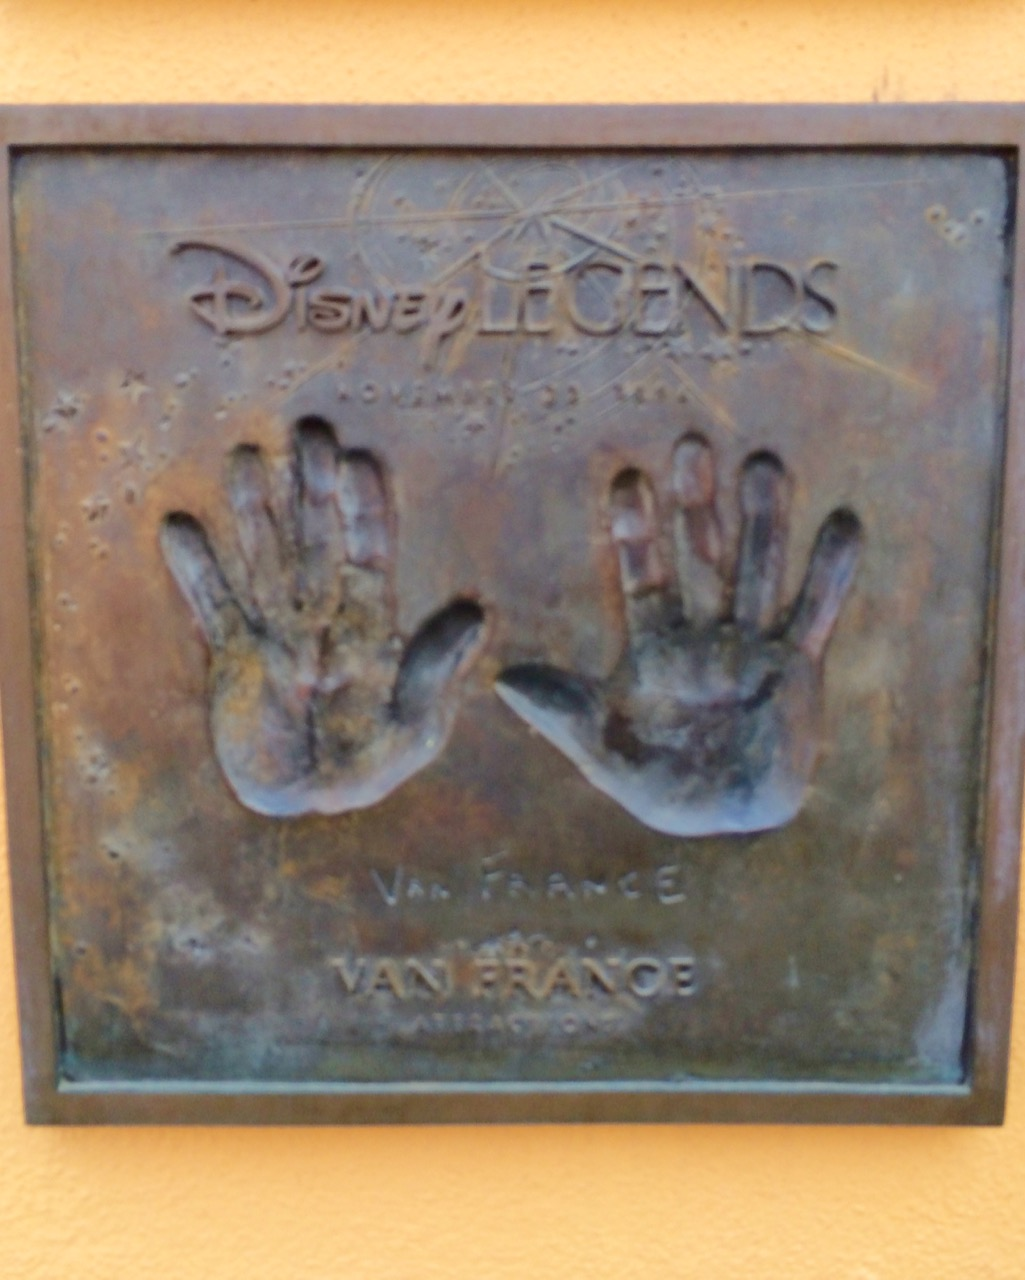 The hands of Van France, founder of The Disney University.